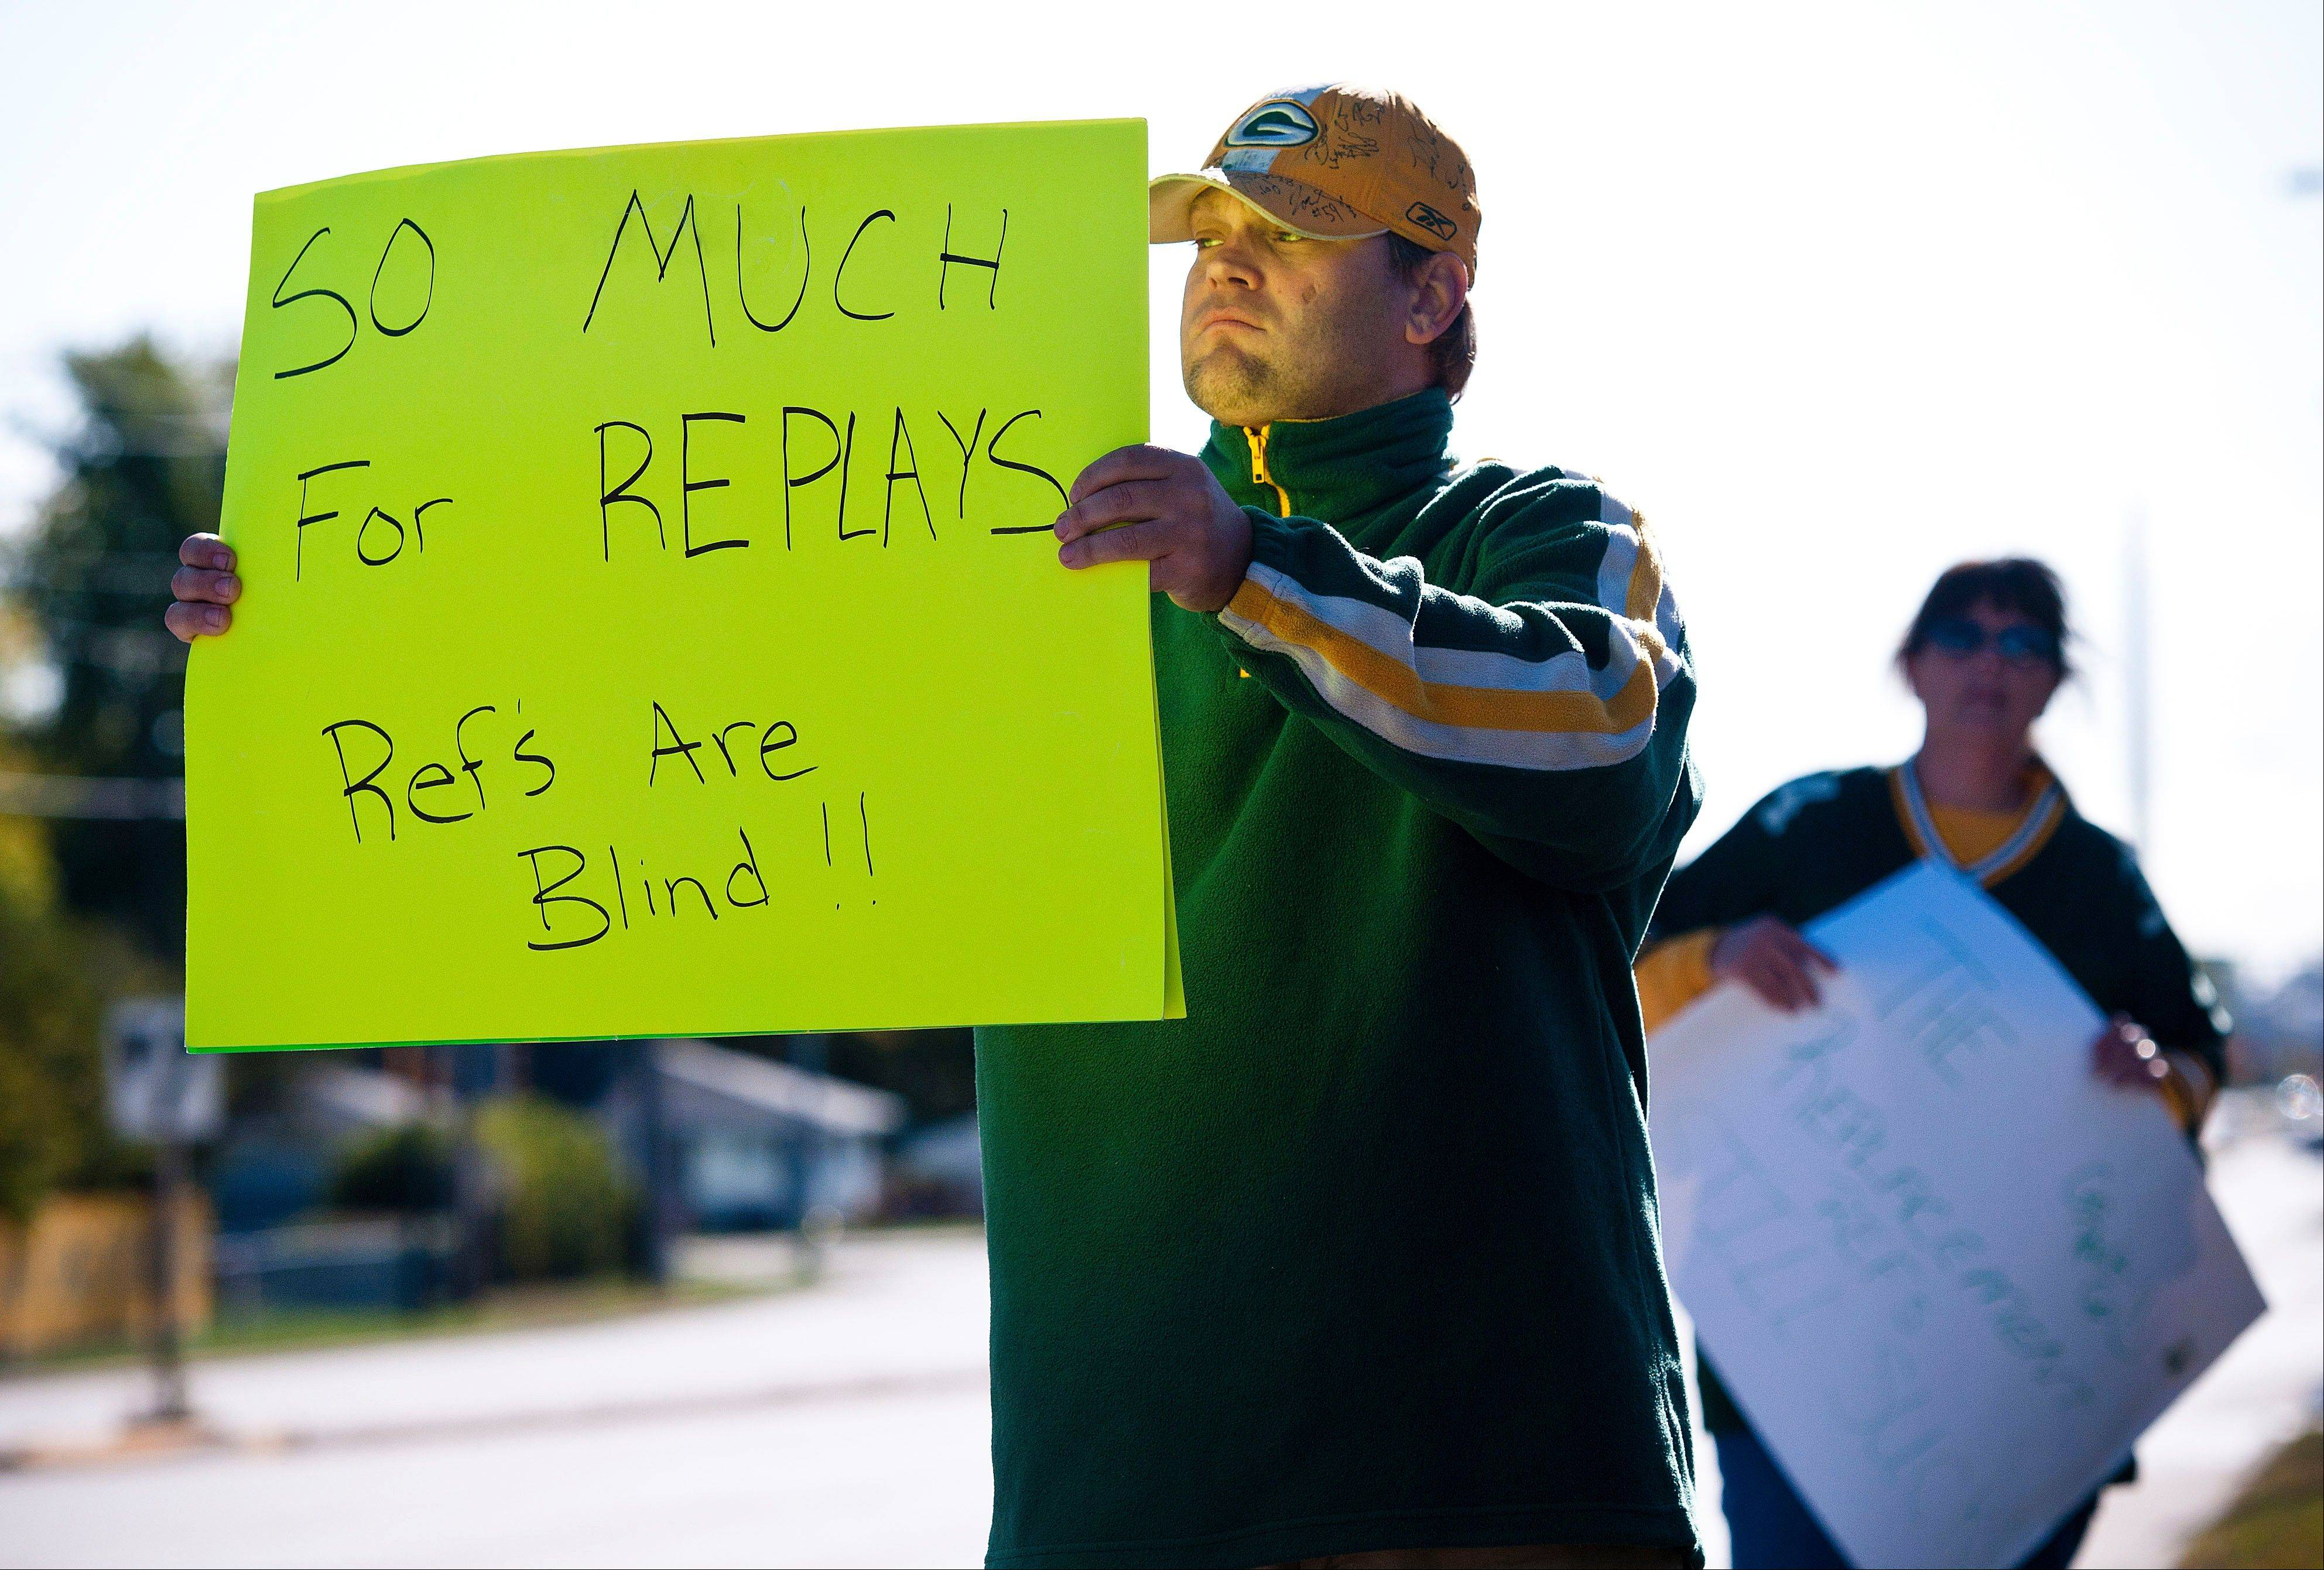 Green Bay Packers fan Mike LePak holds a sign Tuesday on Lombardi Avenue in Green Bay, Wis., in protest of a controversial call in the Packers 14-12 loss to the Seattle Seahawks Monday night in Seattle. Just when it seemed that NFL coaches, players and fans couldn't get any angrier, along came a fiasco that trumped any of the complaints from the weekend.